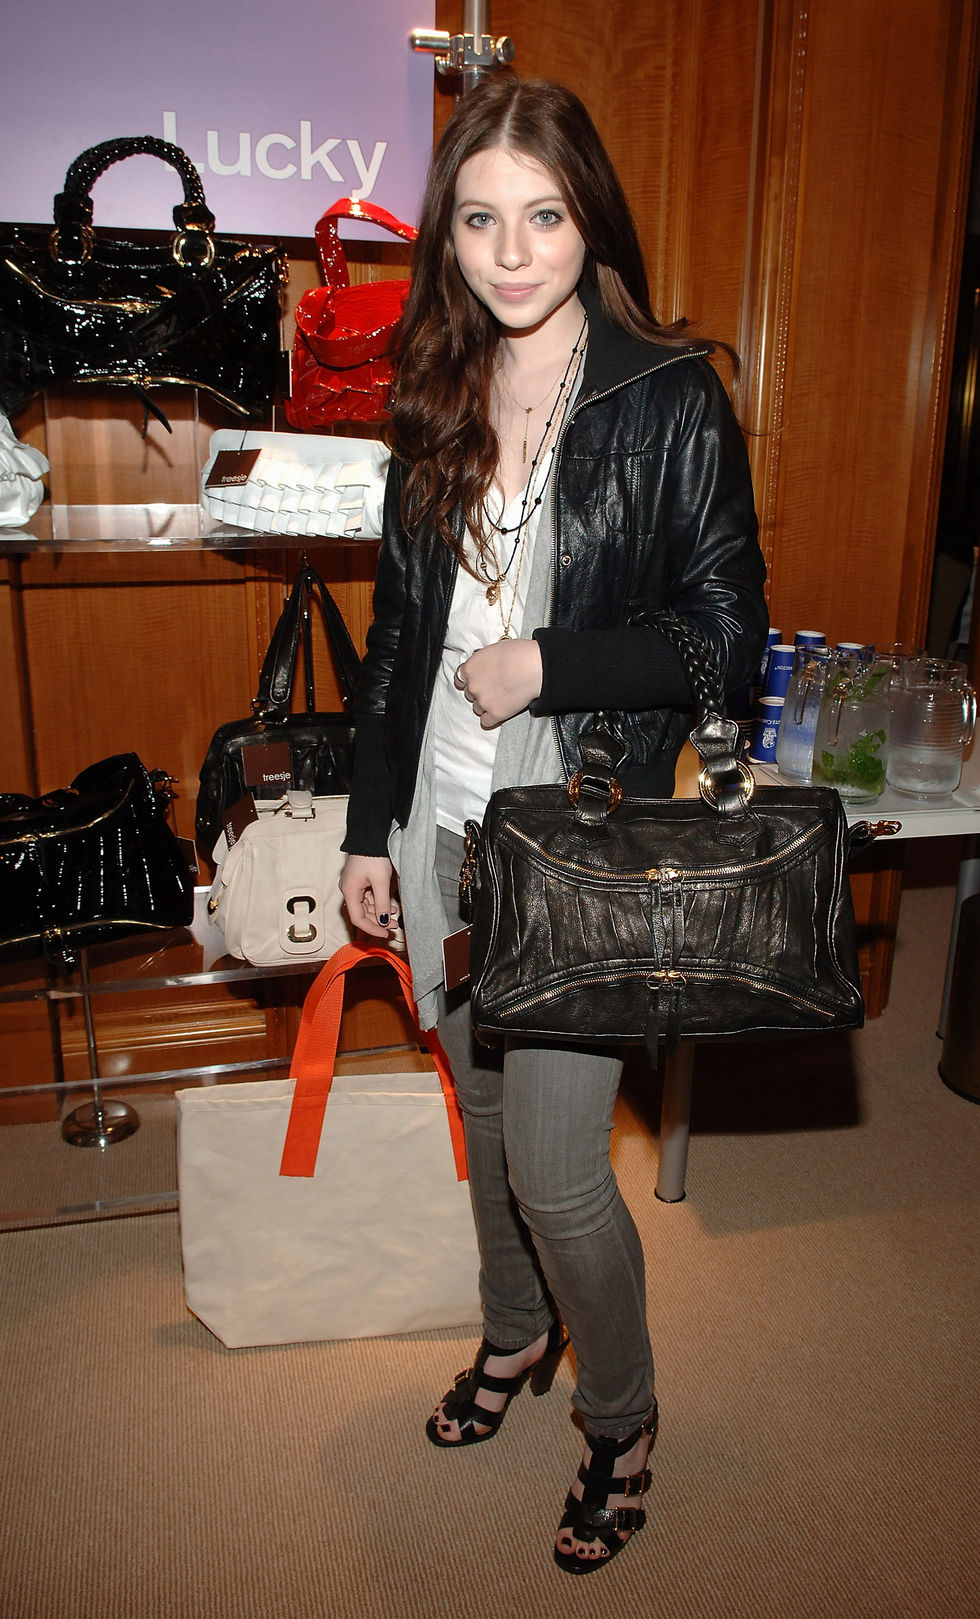 michelle-trachtenberg-fifth-annual-lucky-club-in-new-york-city-01